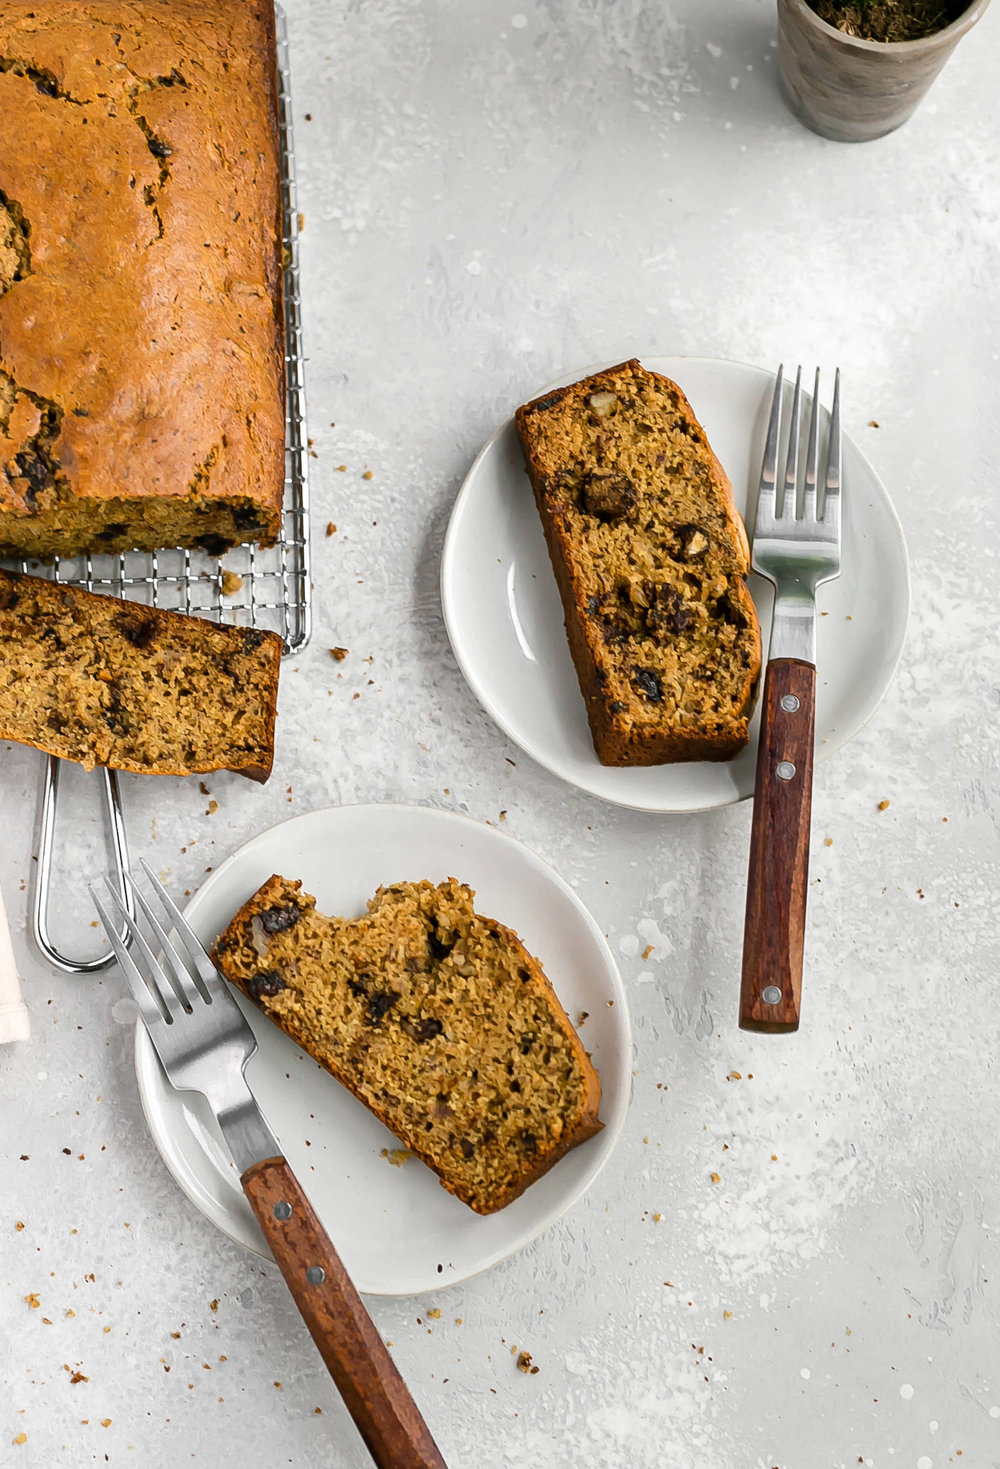 Wholesome Maple Chocolate Chip Walnut Banana Bread: soft, moist banana bread packed with chocolate chips and walnuts. Whole grain and refined sugar free! | TrufflesandTrends.com